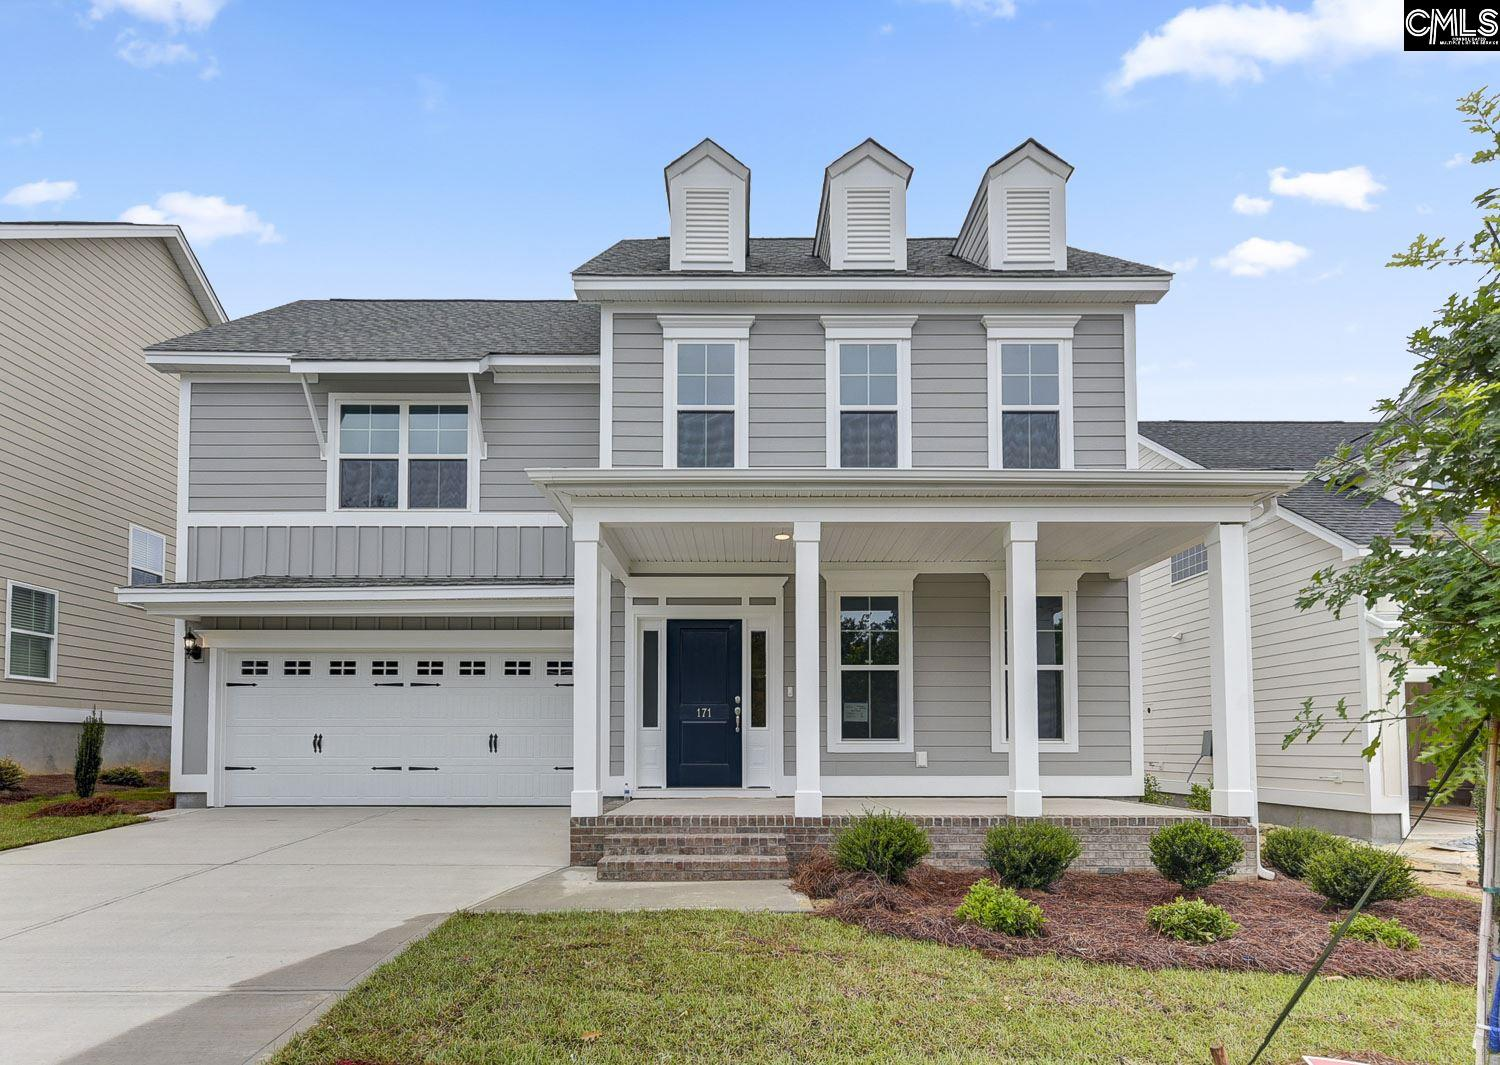 171 Baysdale Columbia, SC 29229